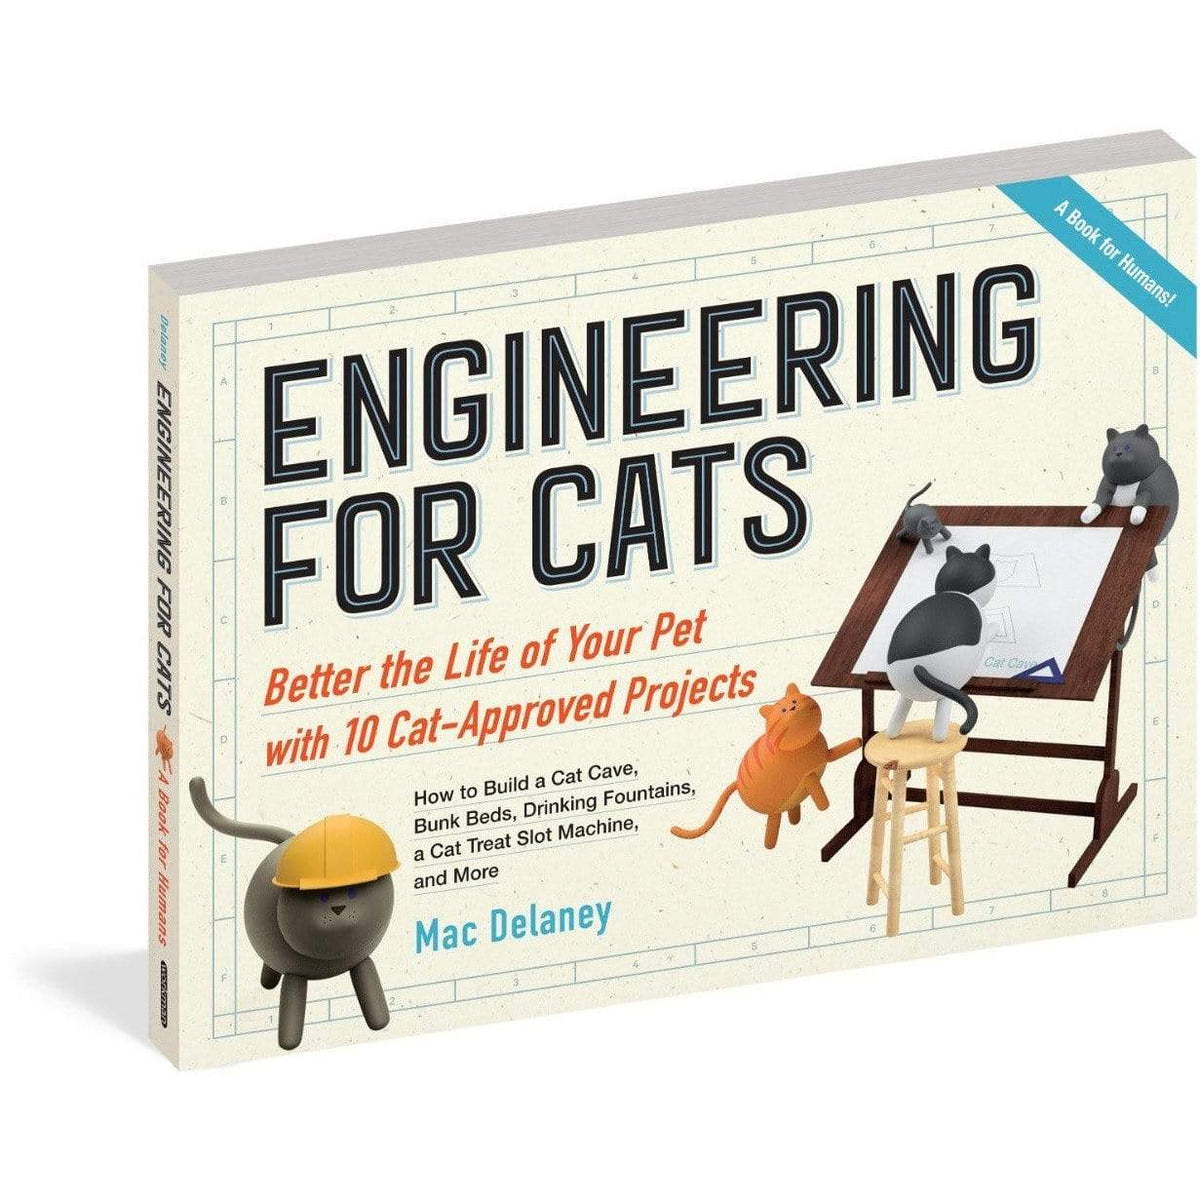 Engineering for Cats Workman Publishing Co. Books